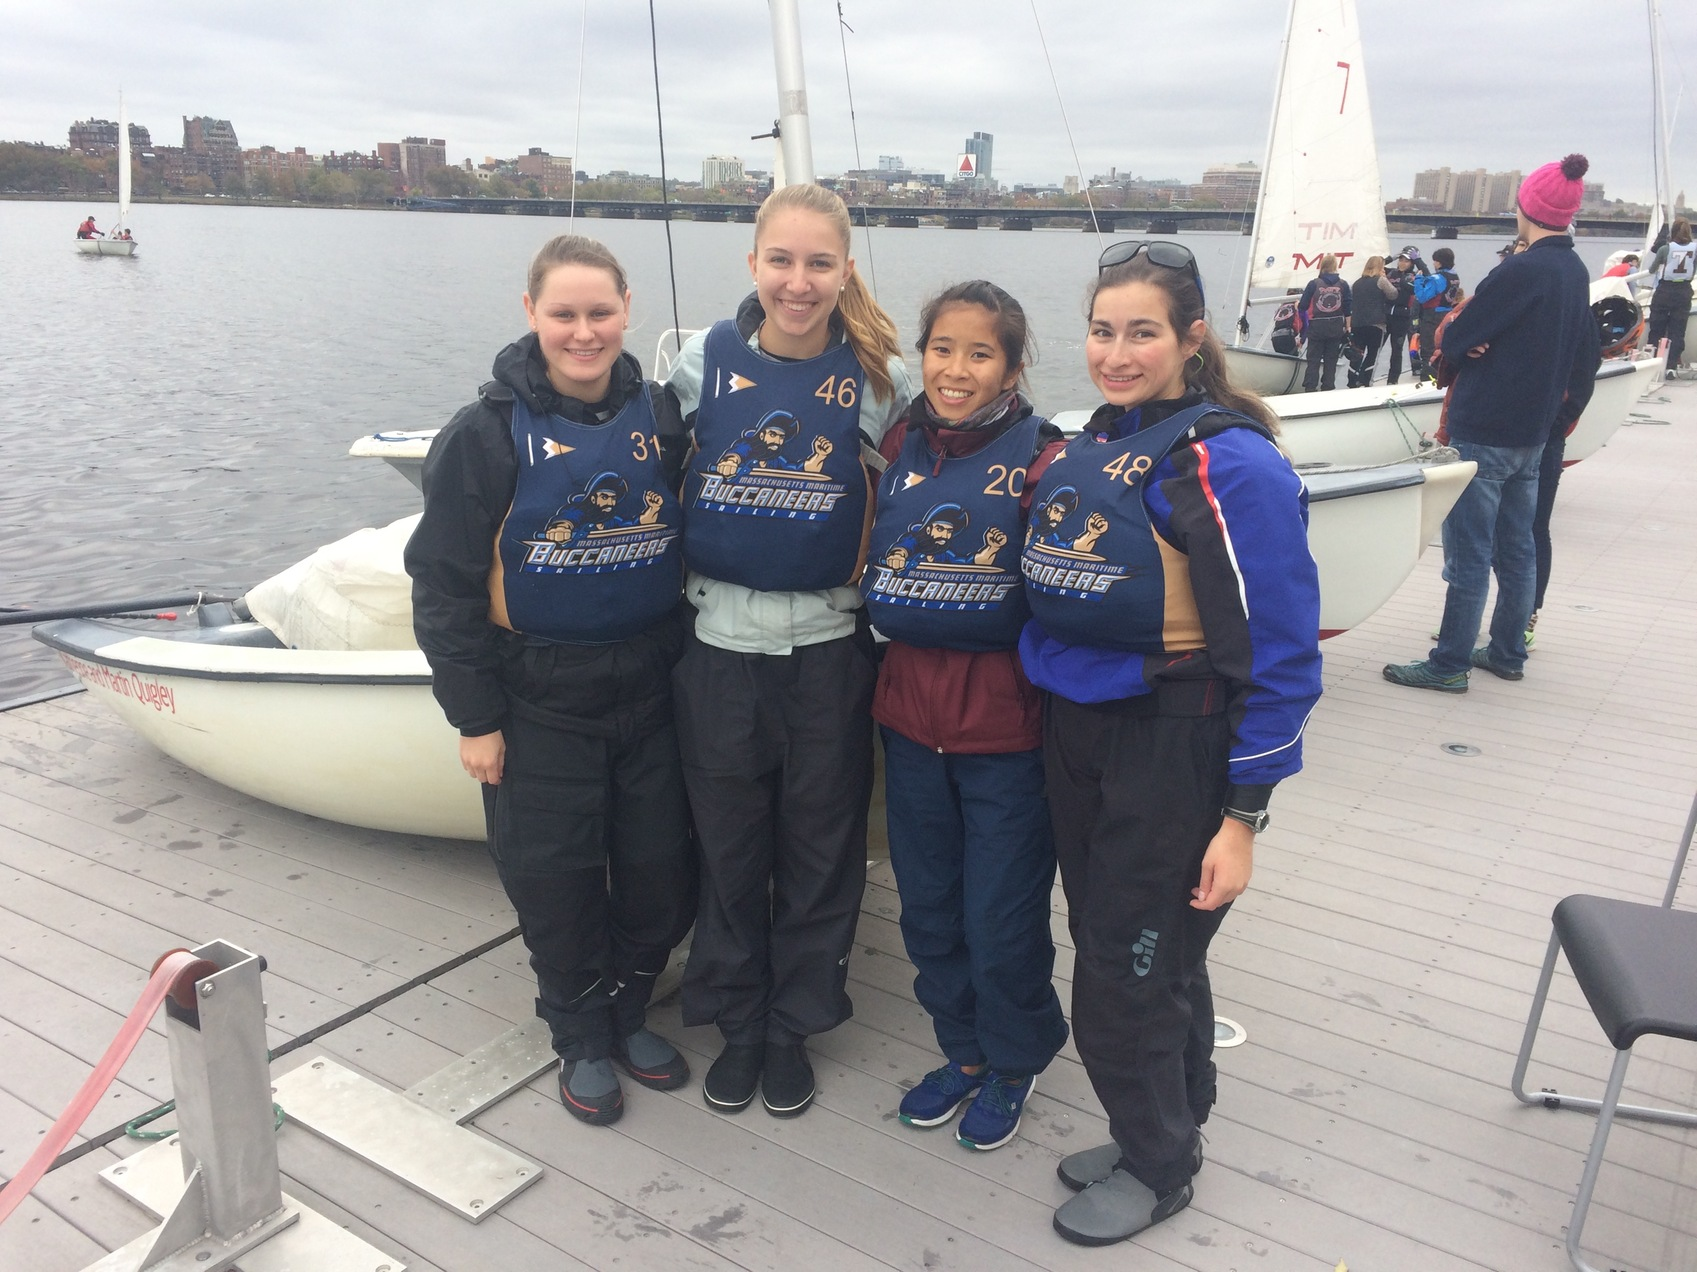 Bucs all female team takes second place at Sailing Regatta on 5 November